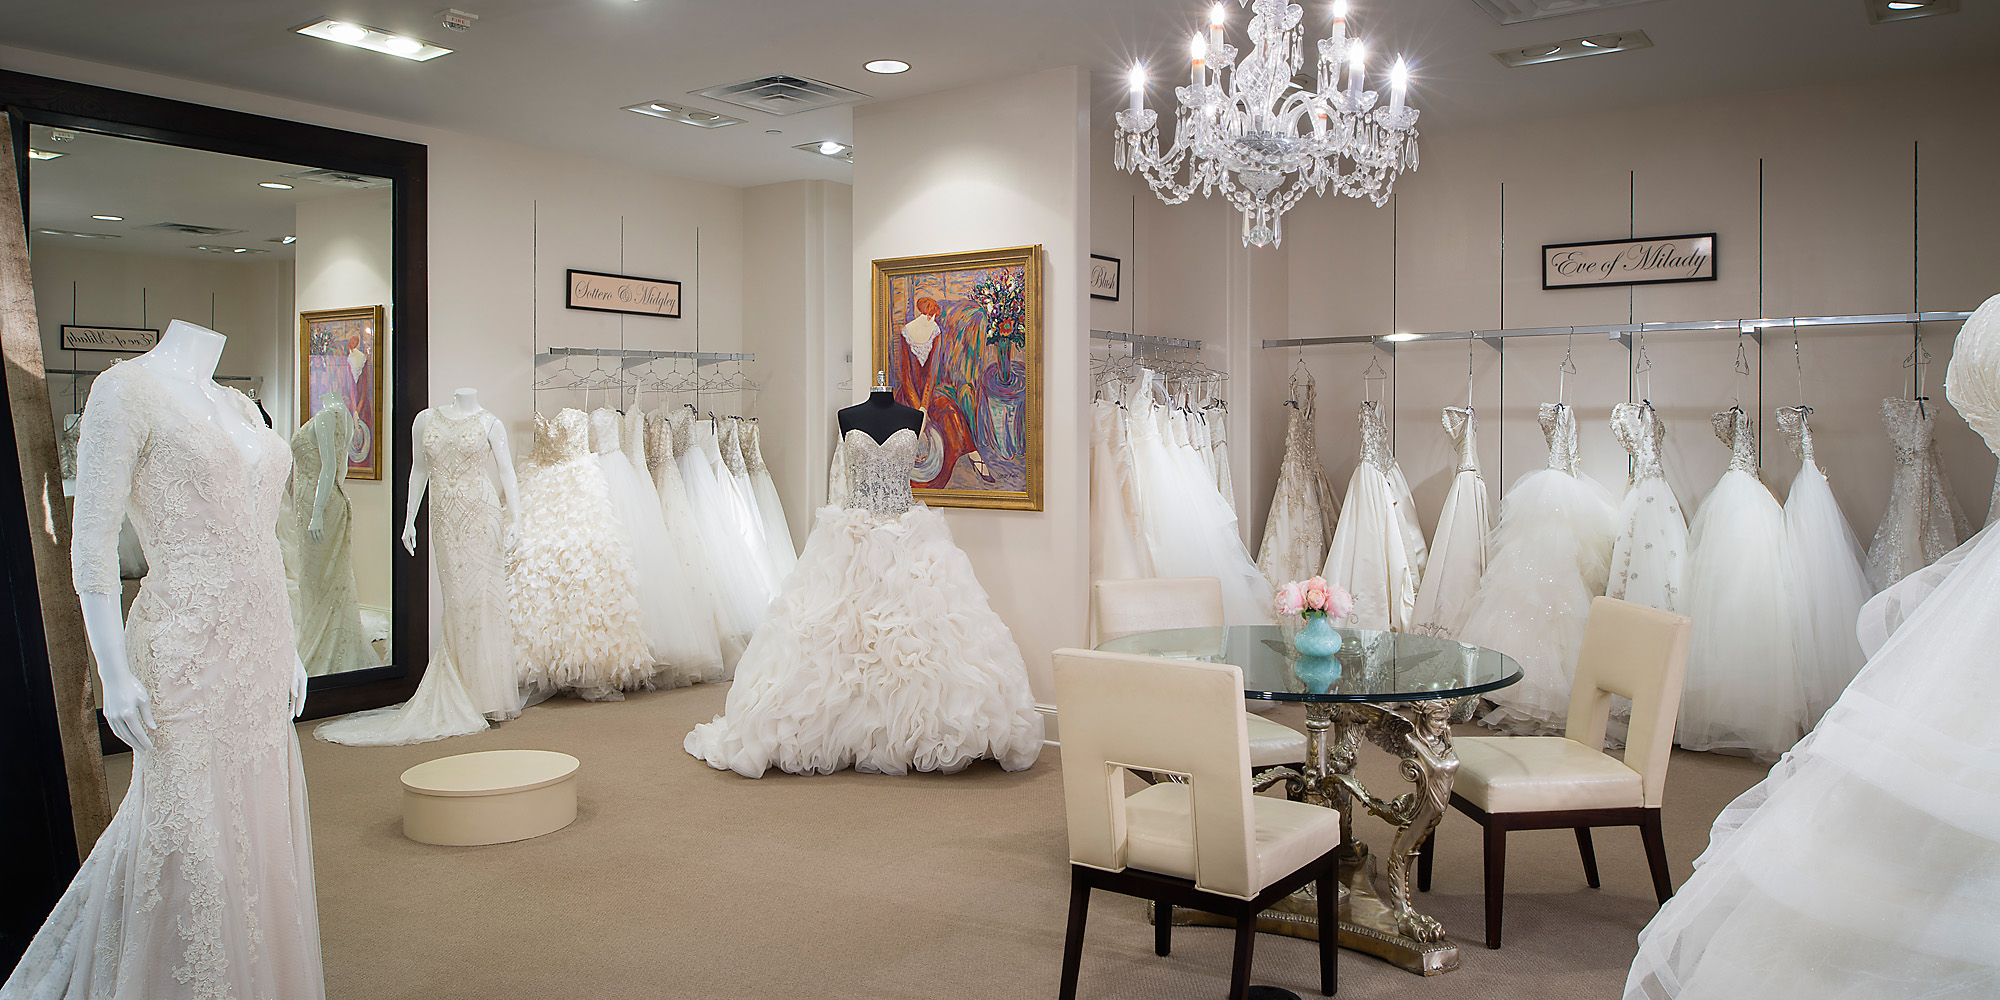 Bridal boutique dallas mini bridal for Wedding dress boutiques dallas